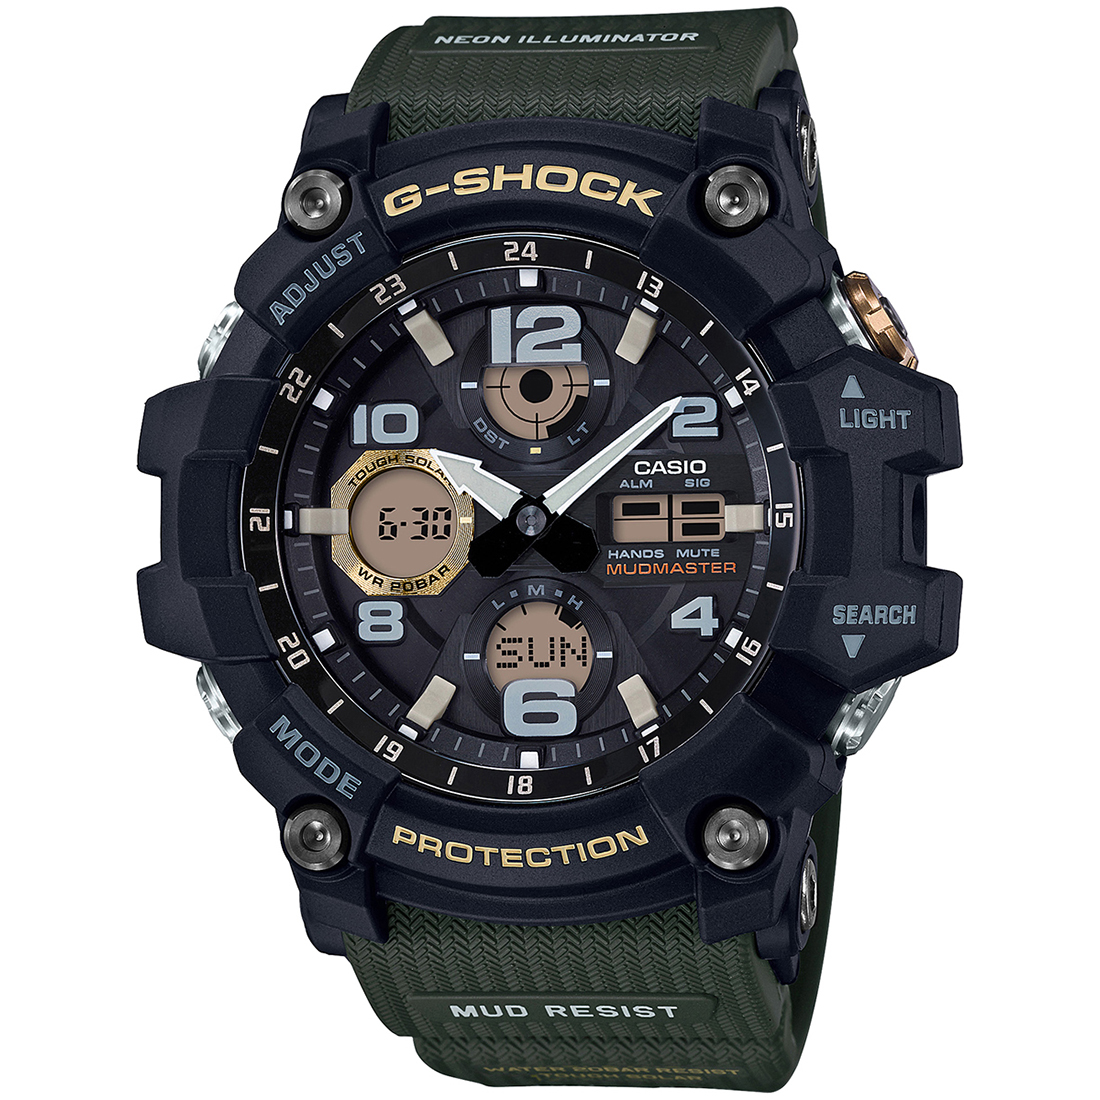 g831 gsg-100-1a3dr g-shock watch-G831